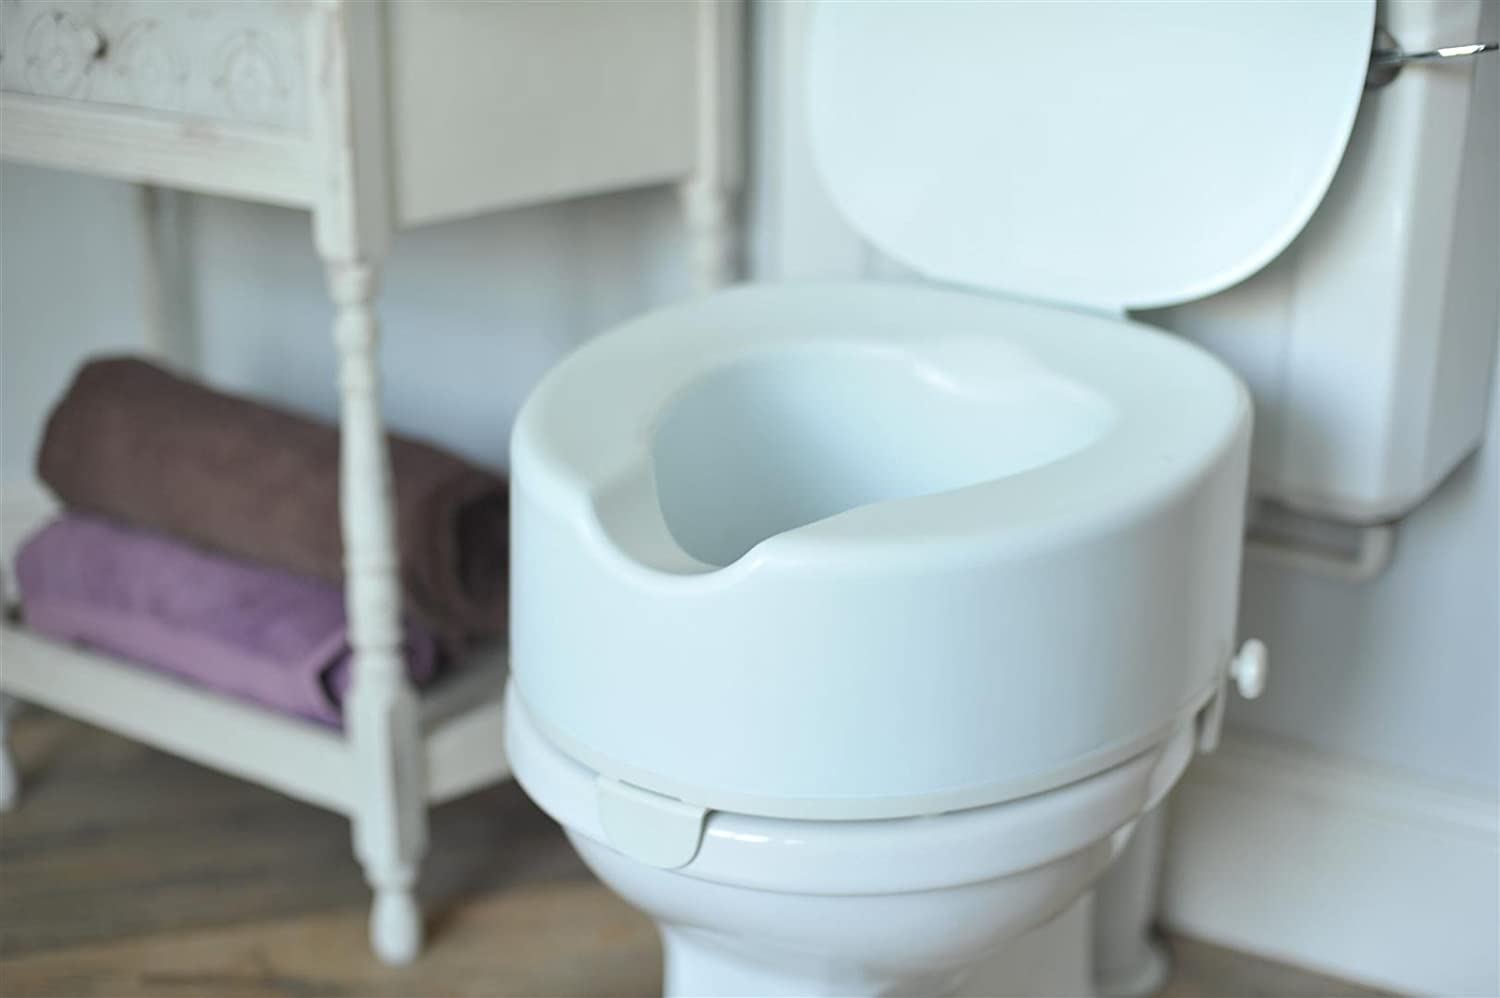 Toilet Wiping Aids For Disabled.Old Fashioned Toilet Aids For ...